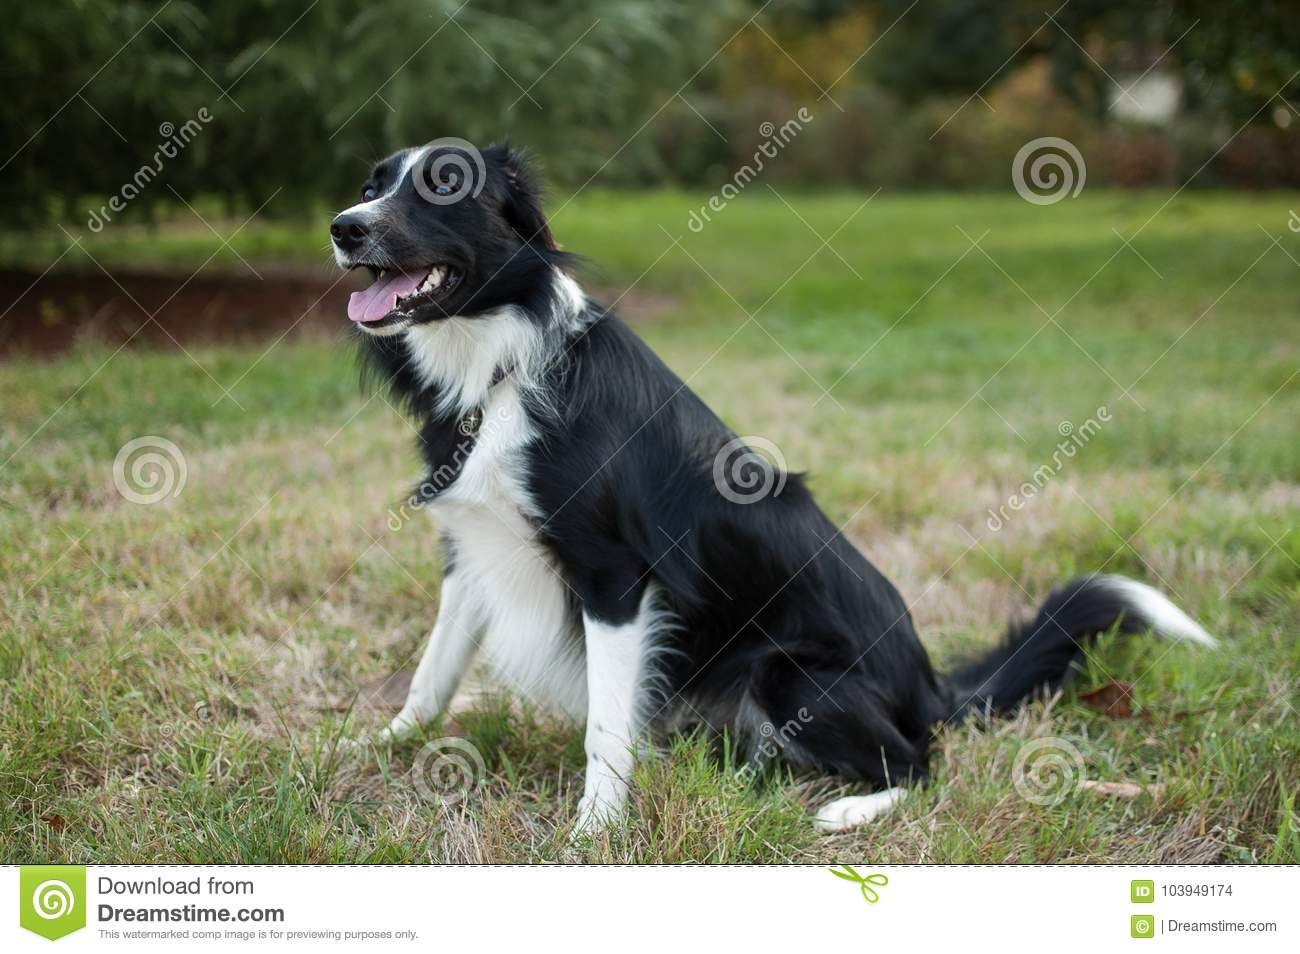 Cute black and white dog sitting on field with tongue hanging out during summer day.